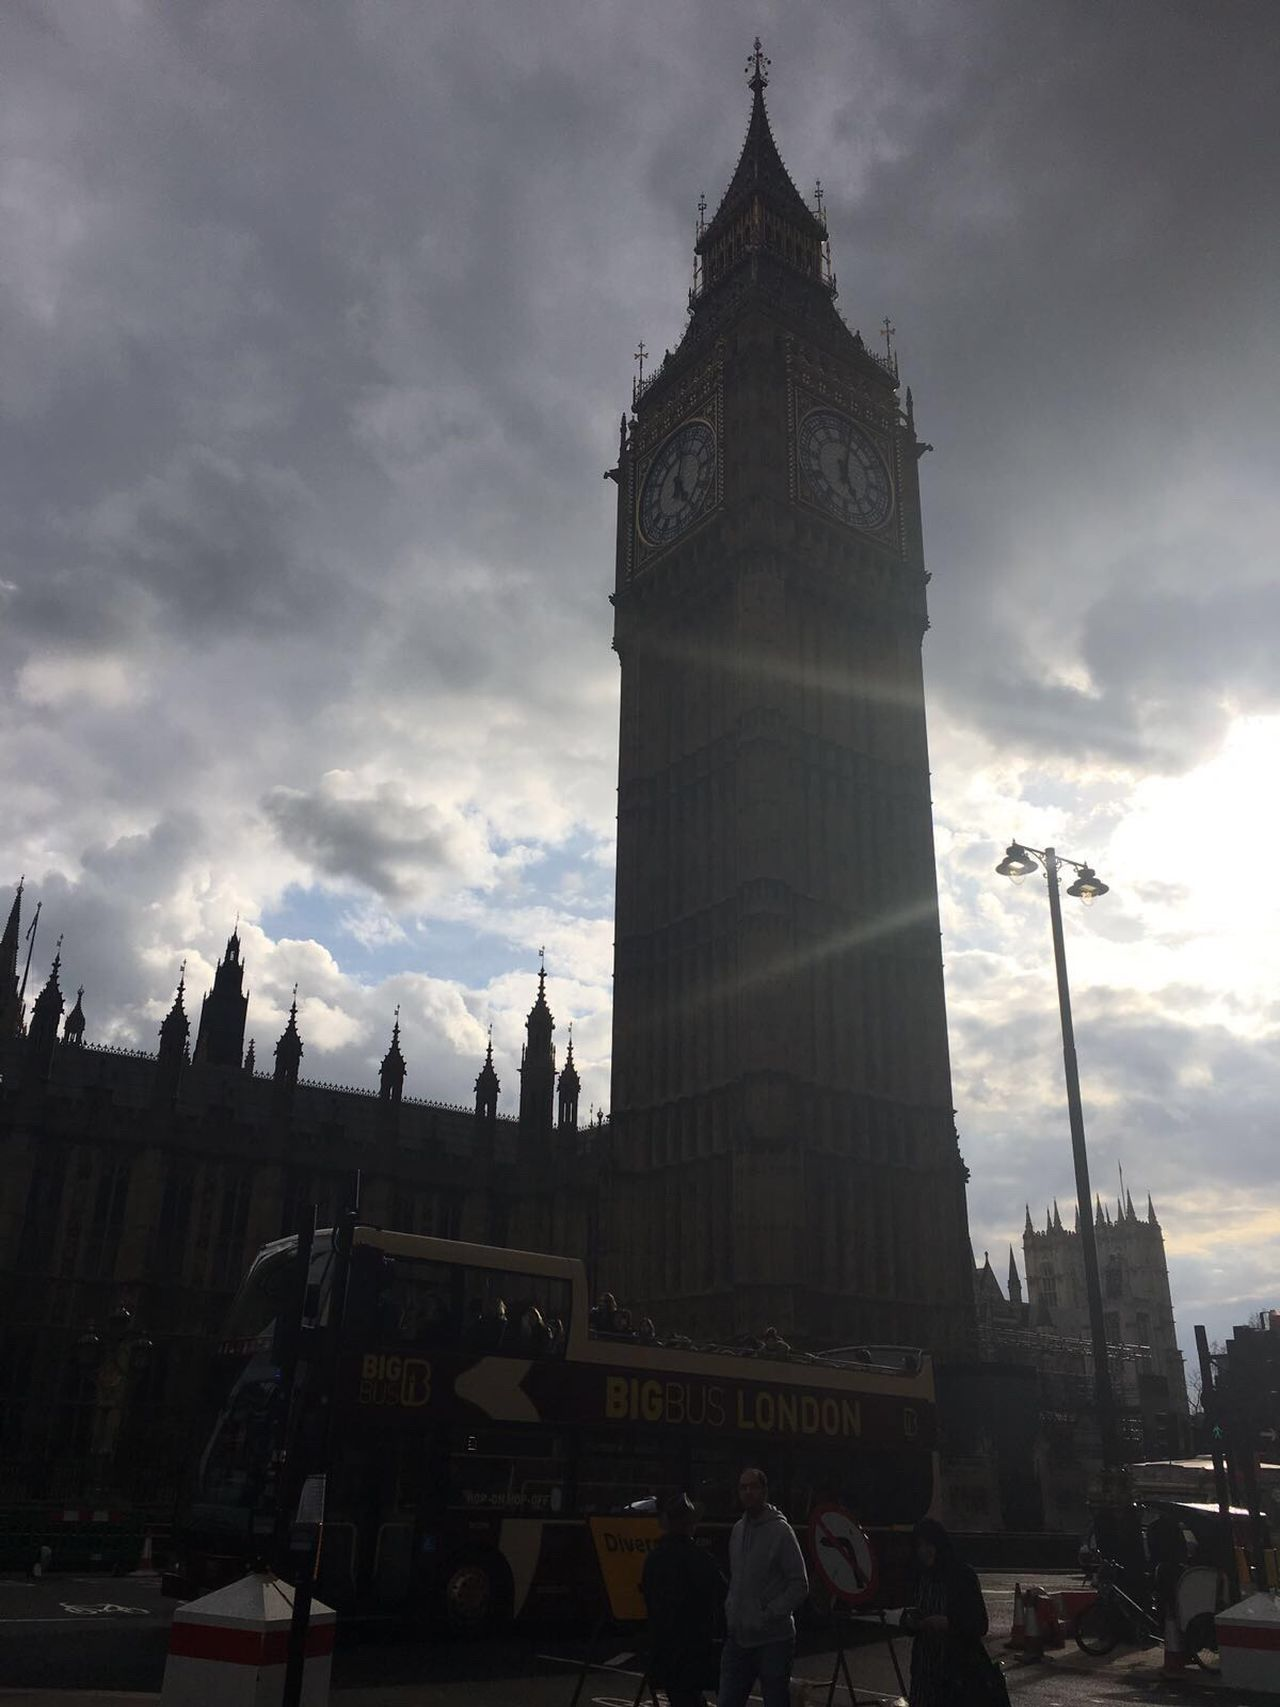 Big Ben Architecture Tower Cloud - Sky Sky Travel Travel Destinations City Tourism Outdoors Clock Tower Day London United Kingdom Wanderlust Wandering Traveler Traveling No Filter